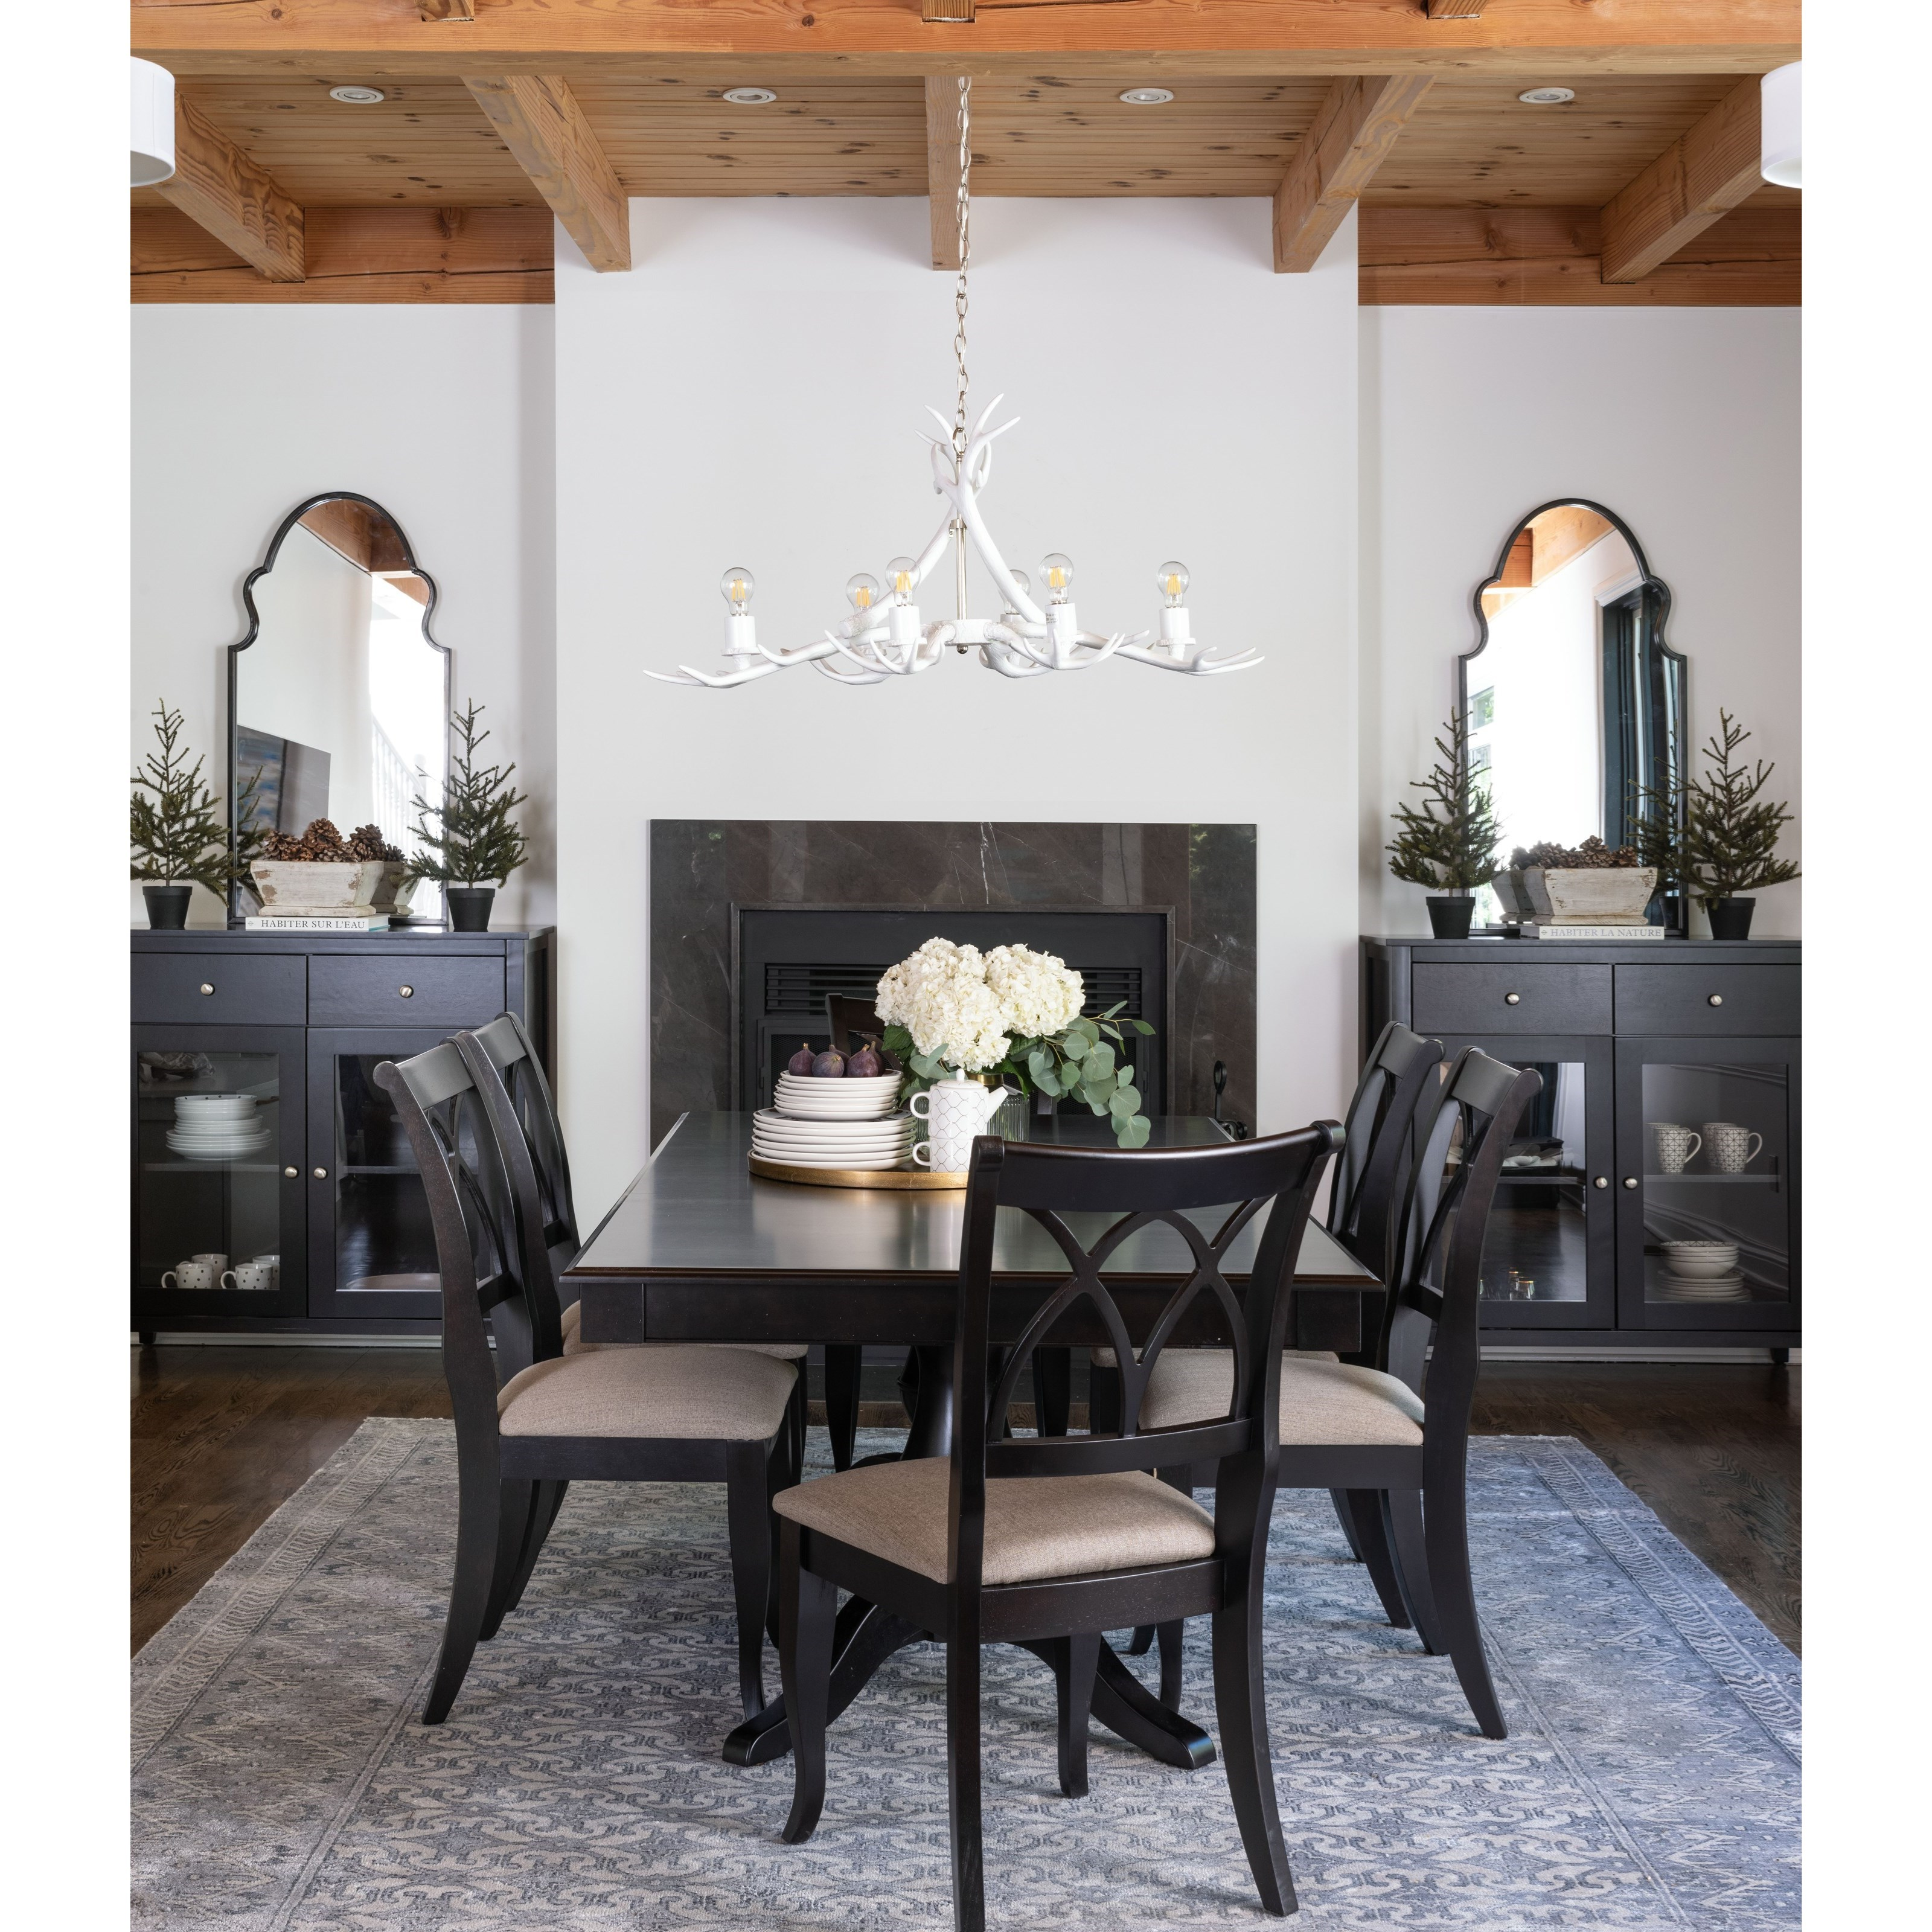 Gourmet - Custom Dining Dining Room Group by Canadel at Dinette Depot